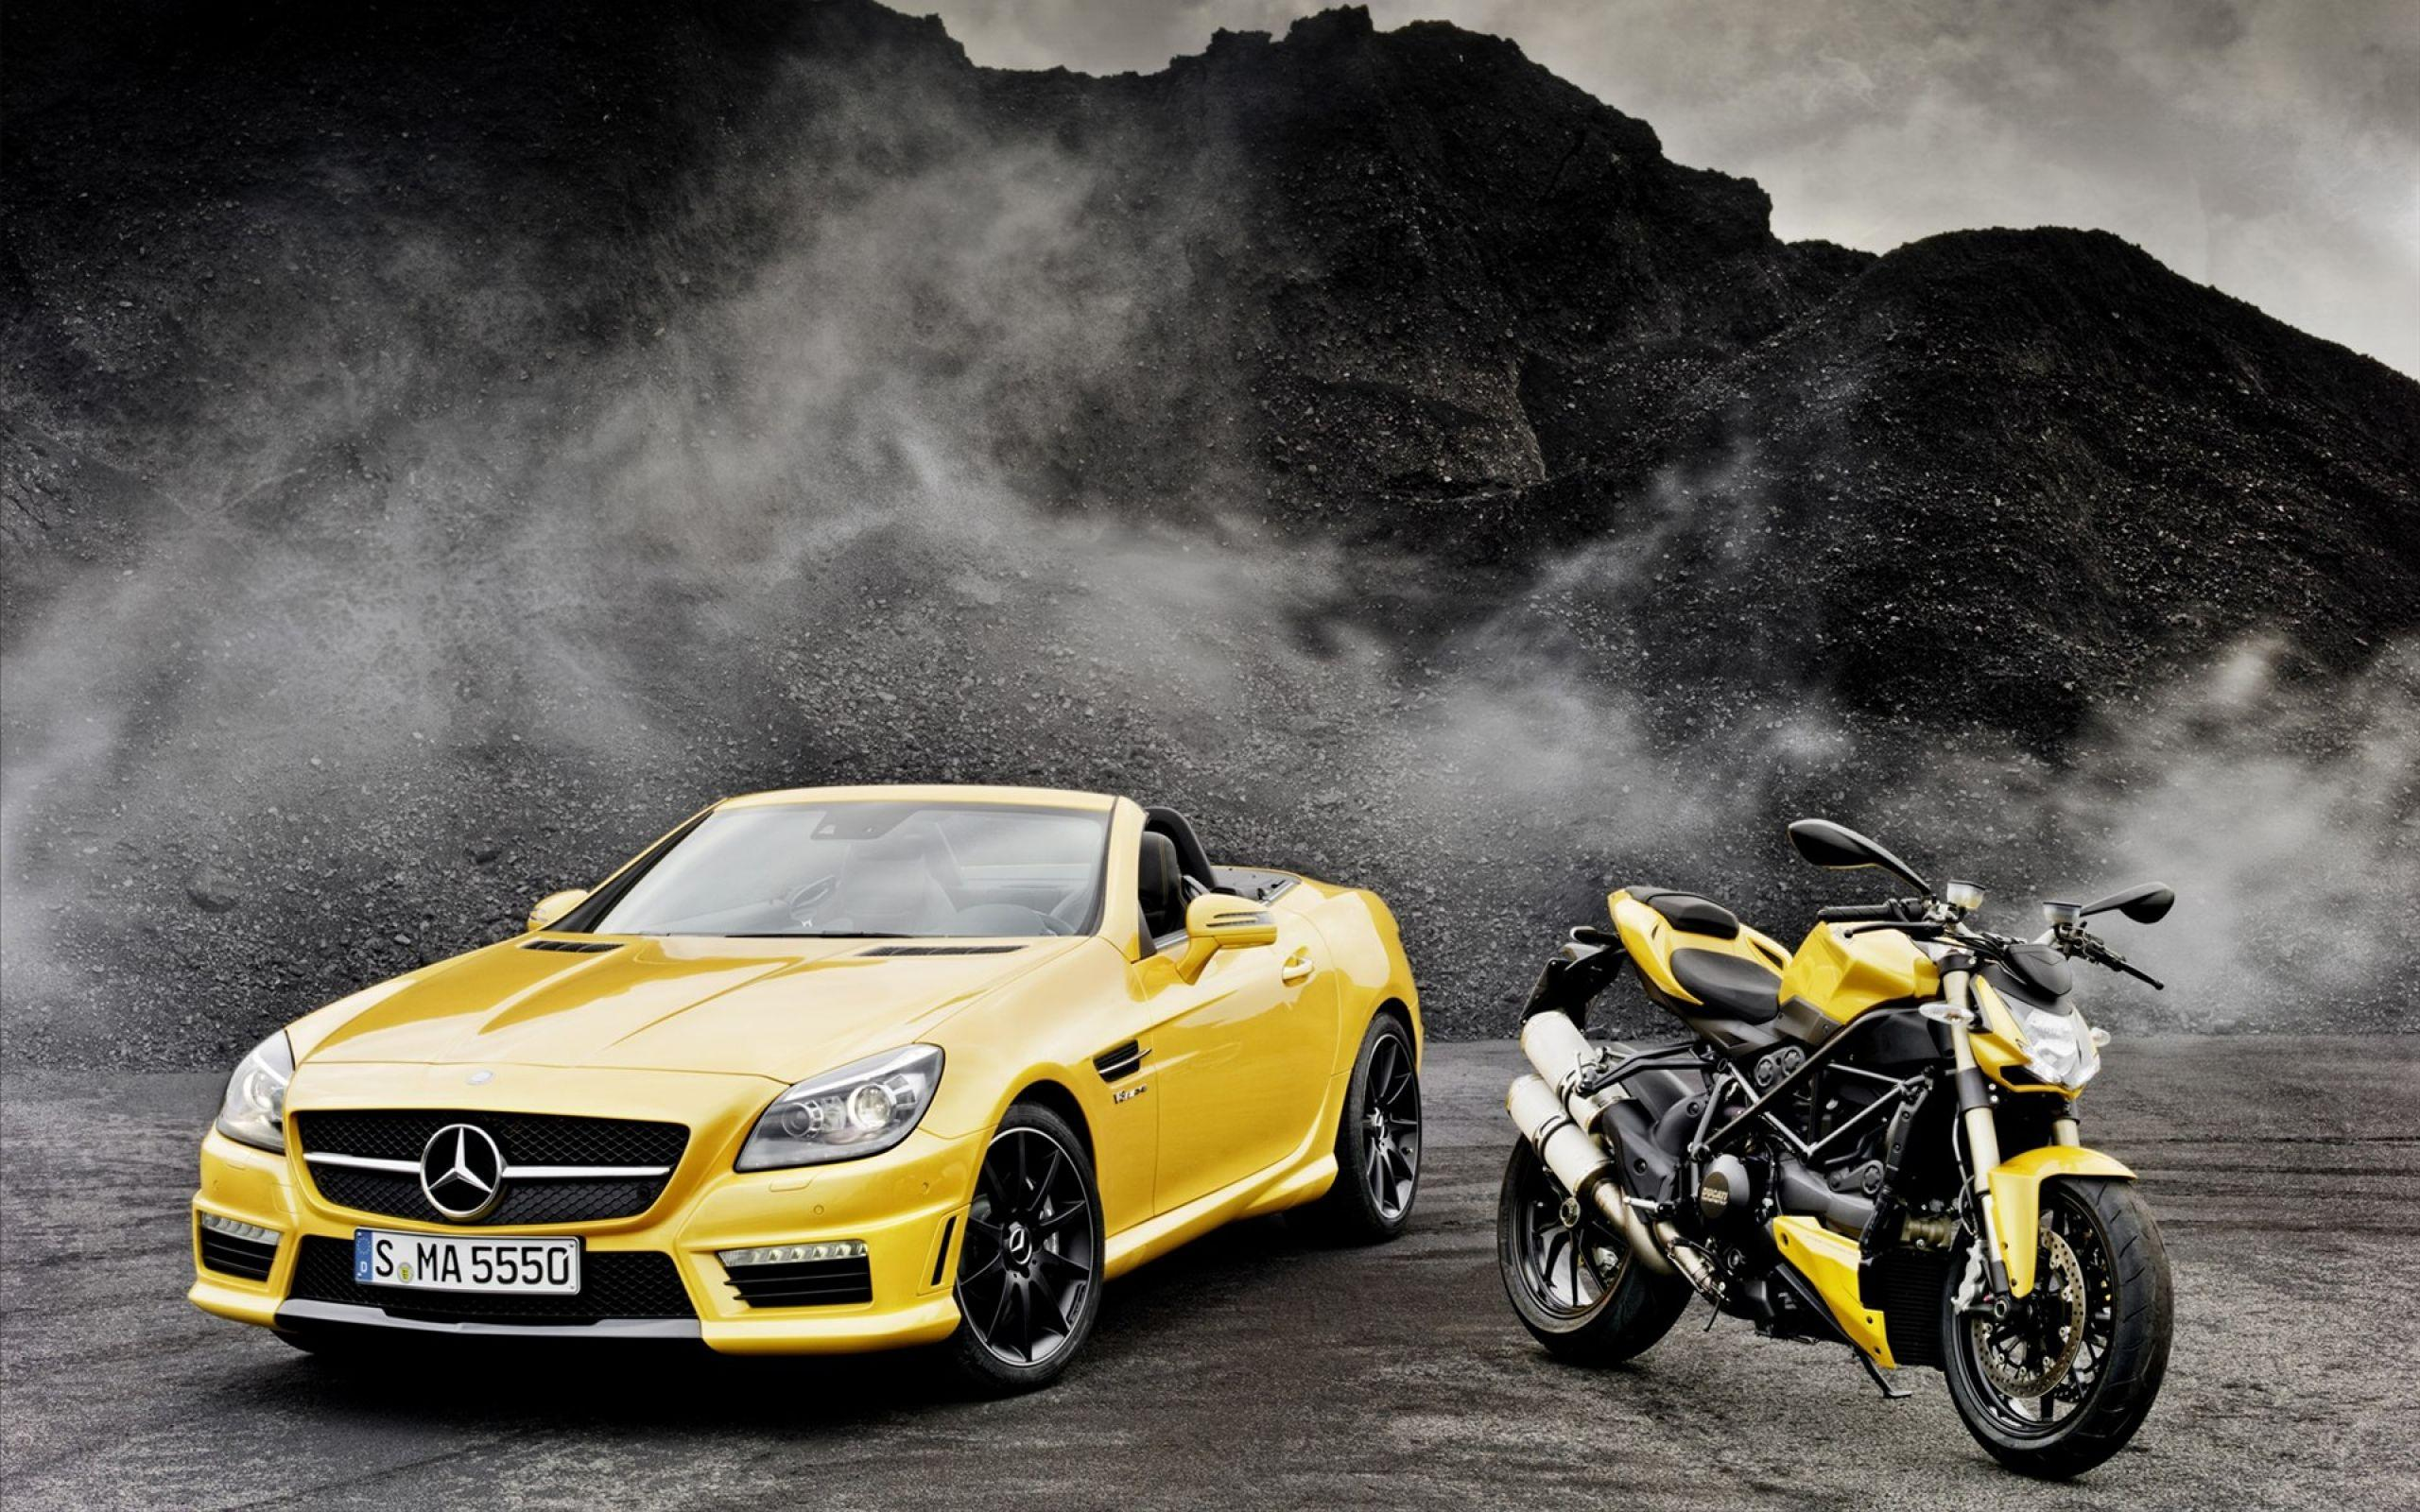 Bikers Vs. Car Enthusiasts – Which Group Is More Involved In Their Hobby